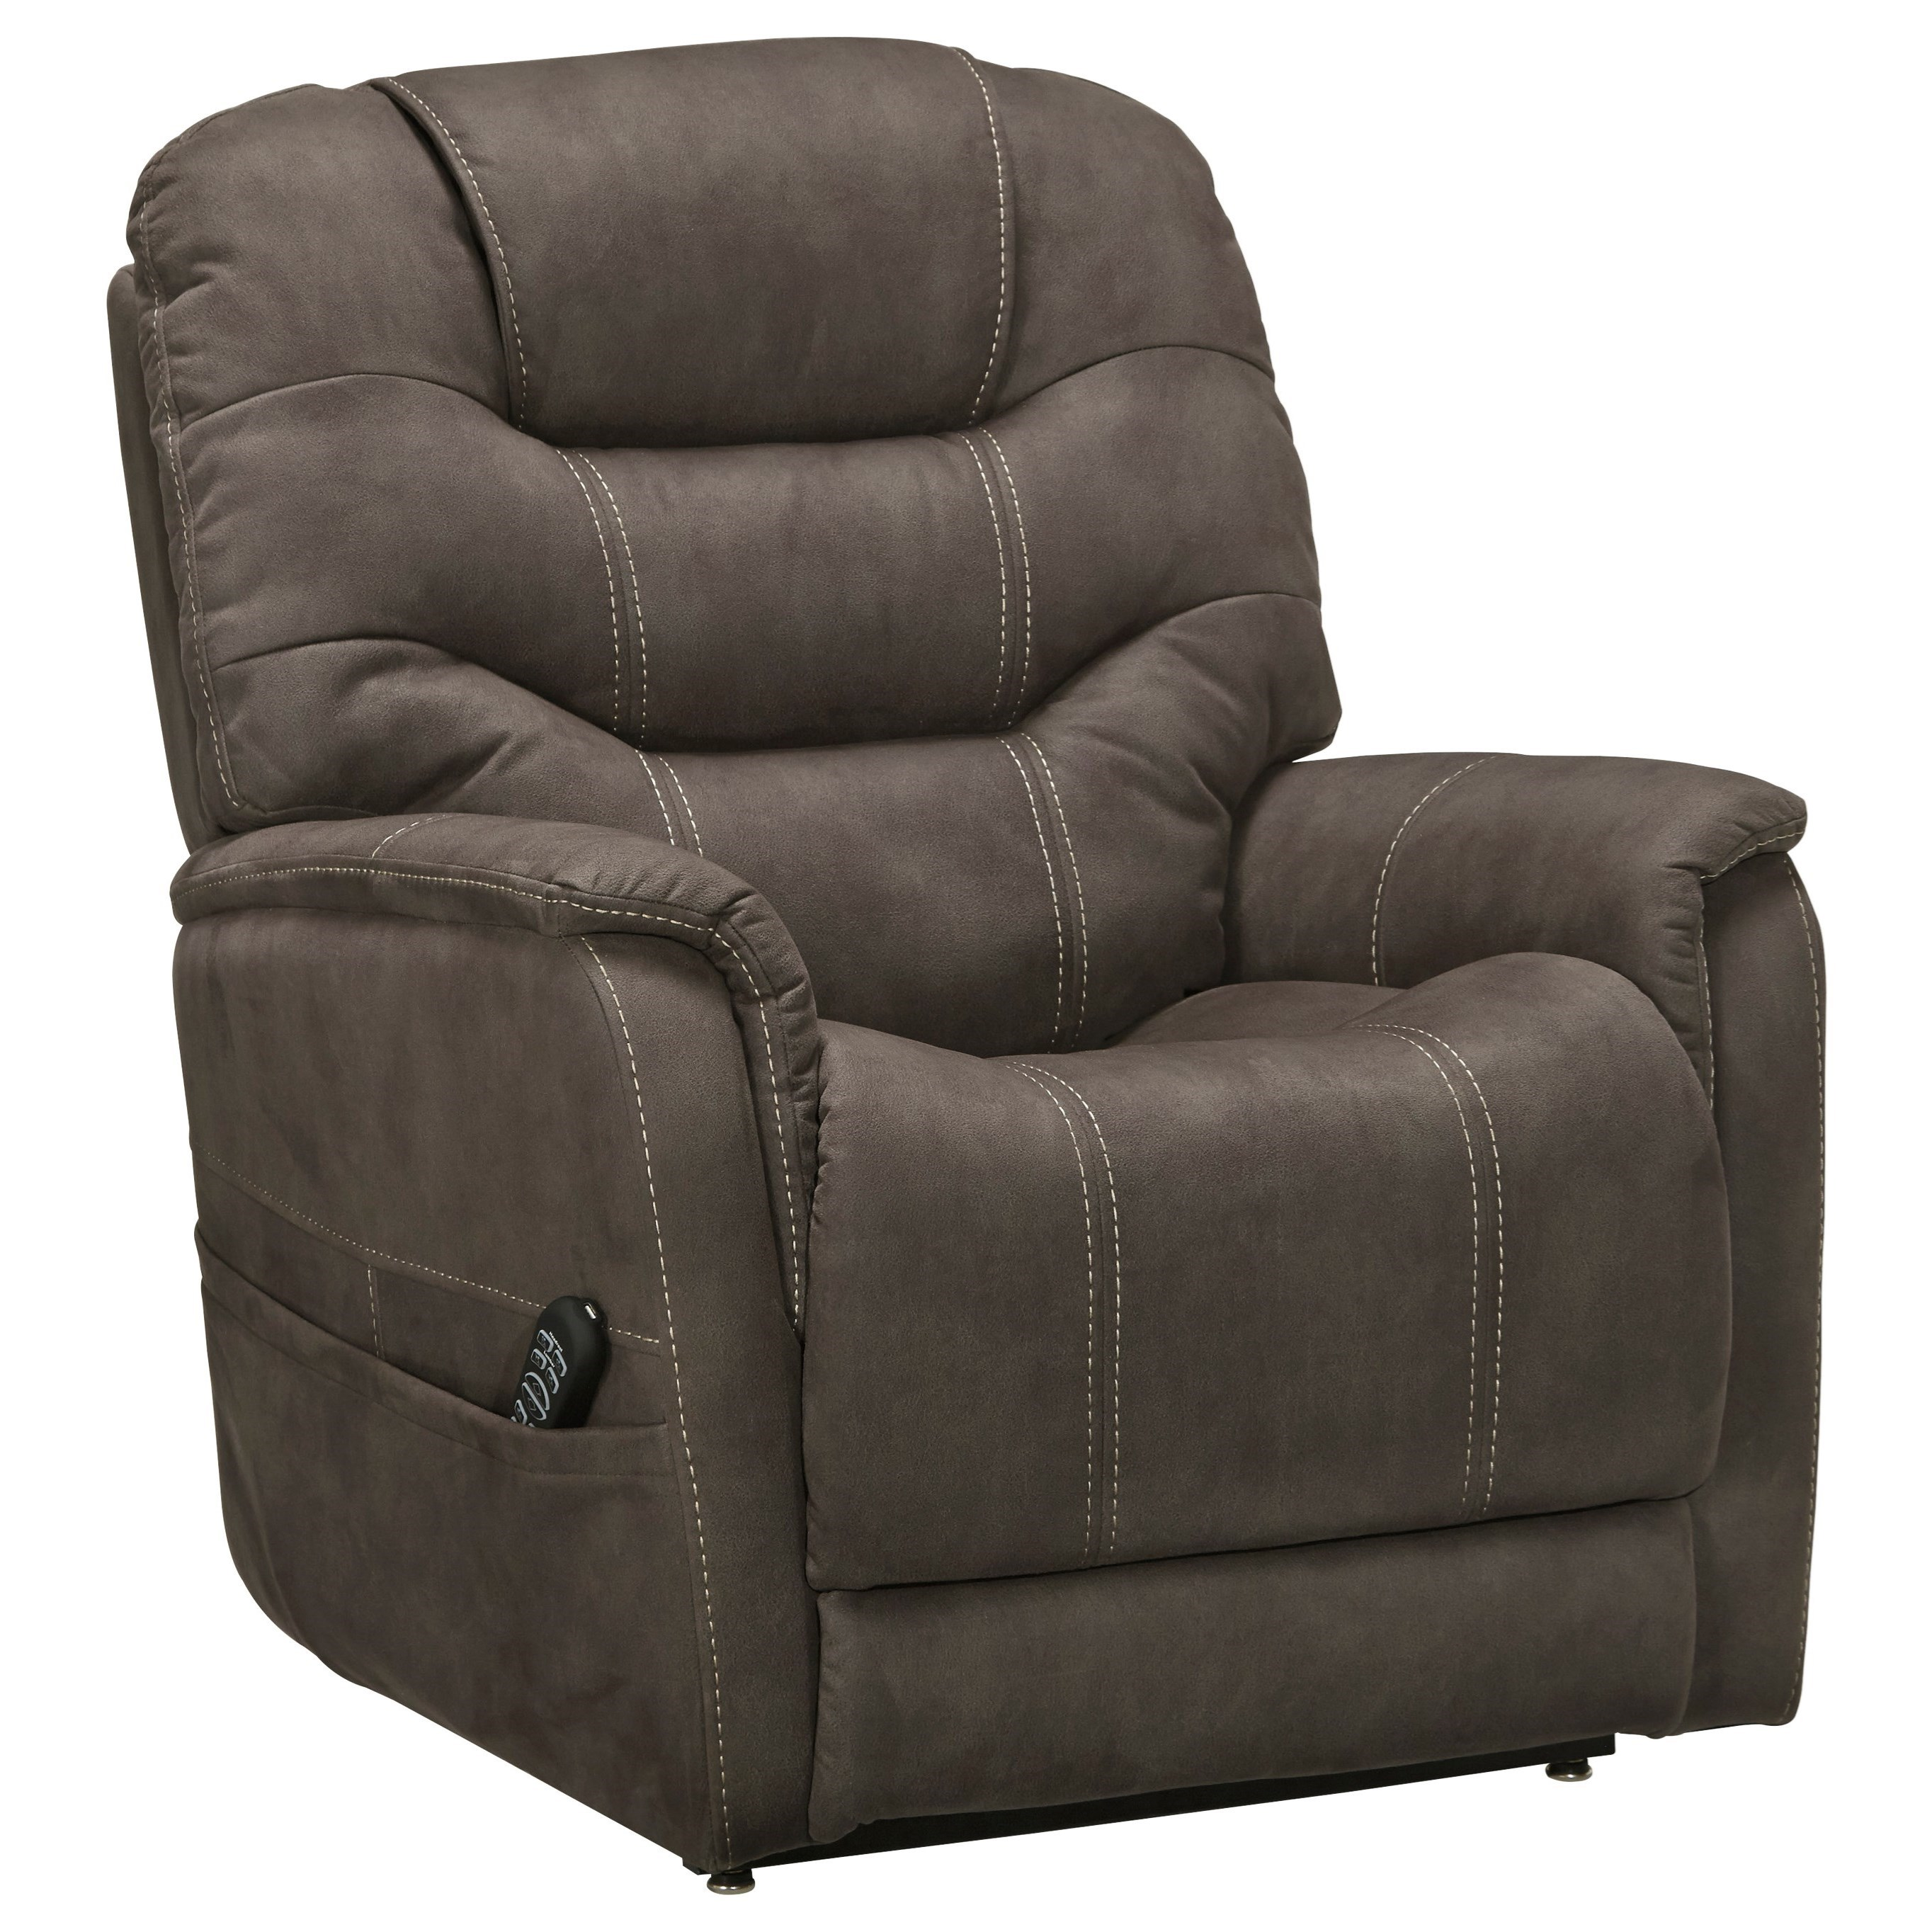 Ballister Power Lift Recliner by Signature Design by Ashley at Beds N Stuff